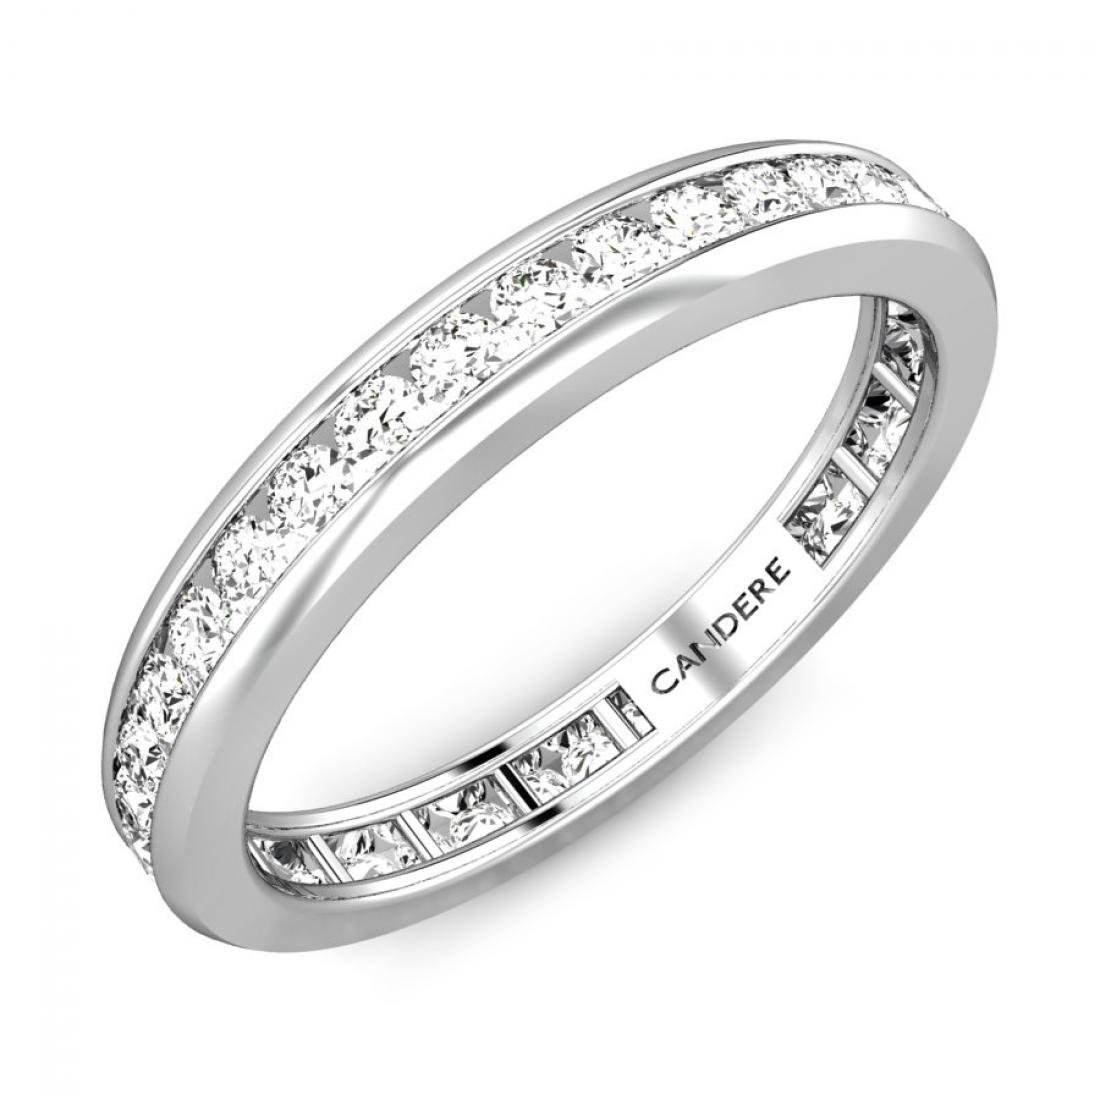 925 Sterling Silver 0.80 ctw Channel Set Round White Diamond Full Eternity Stackable Band for Her (IGI, I-J, SI1-SI2)